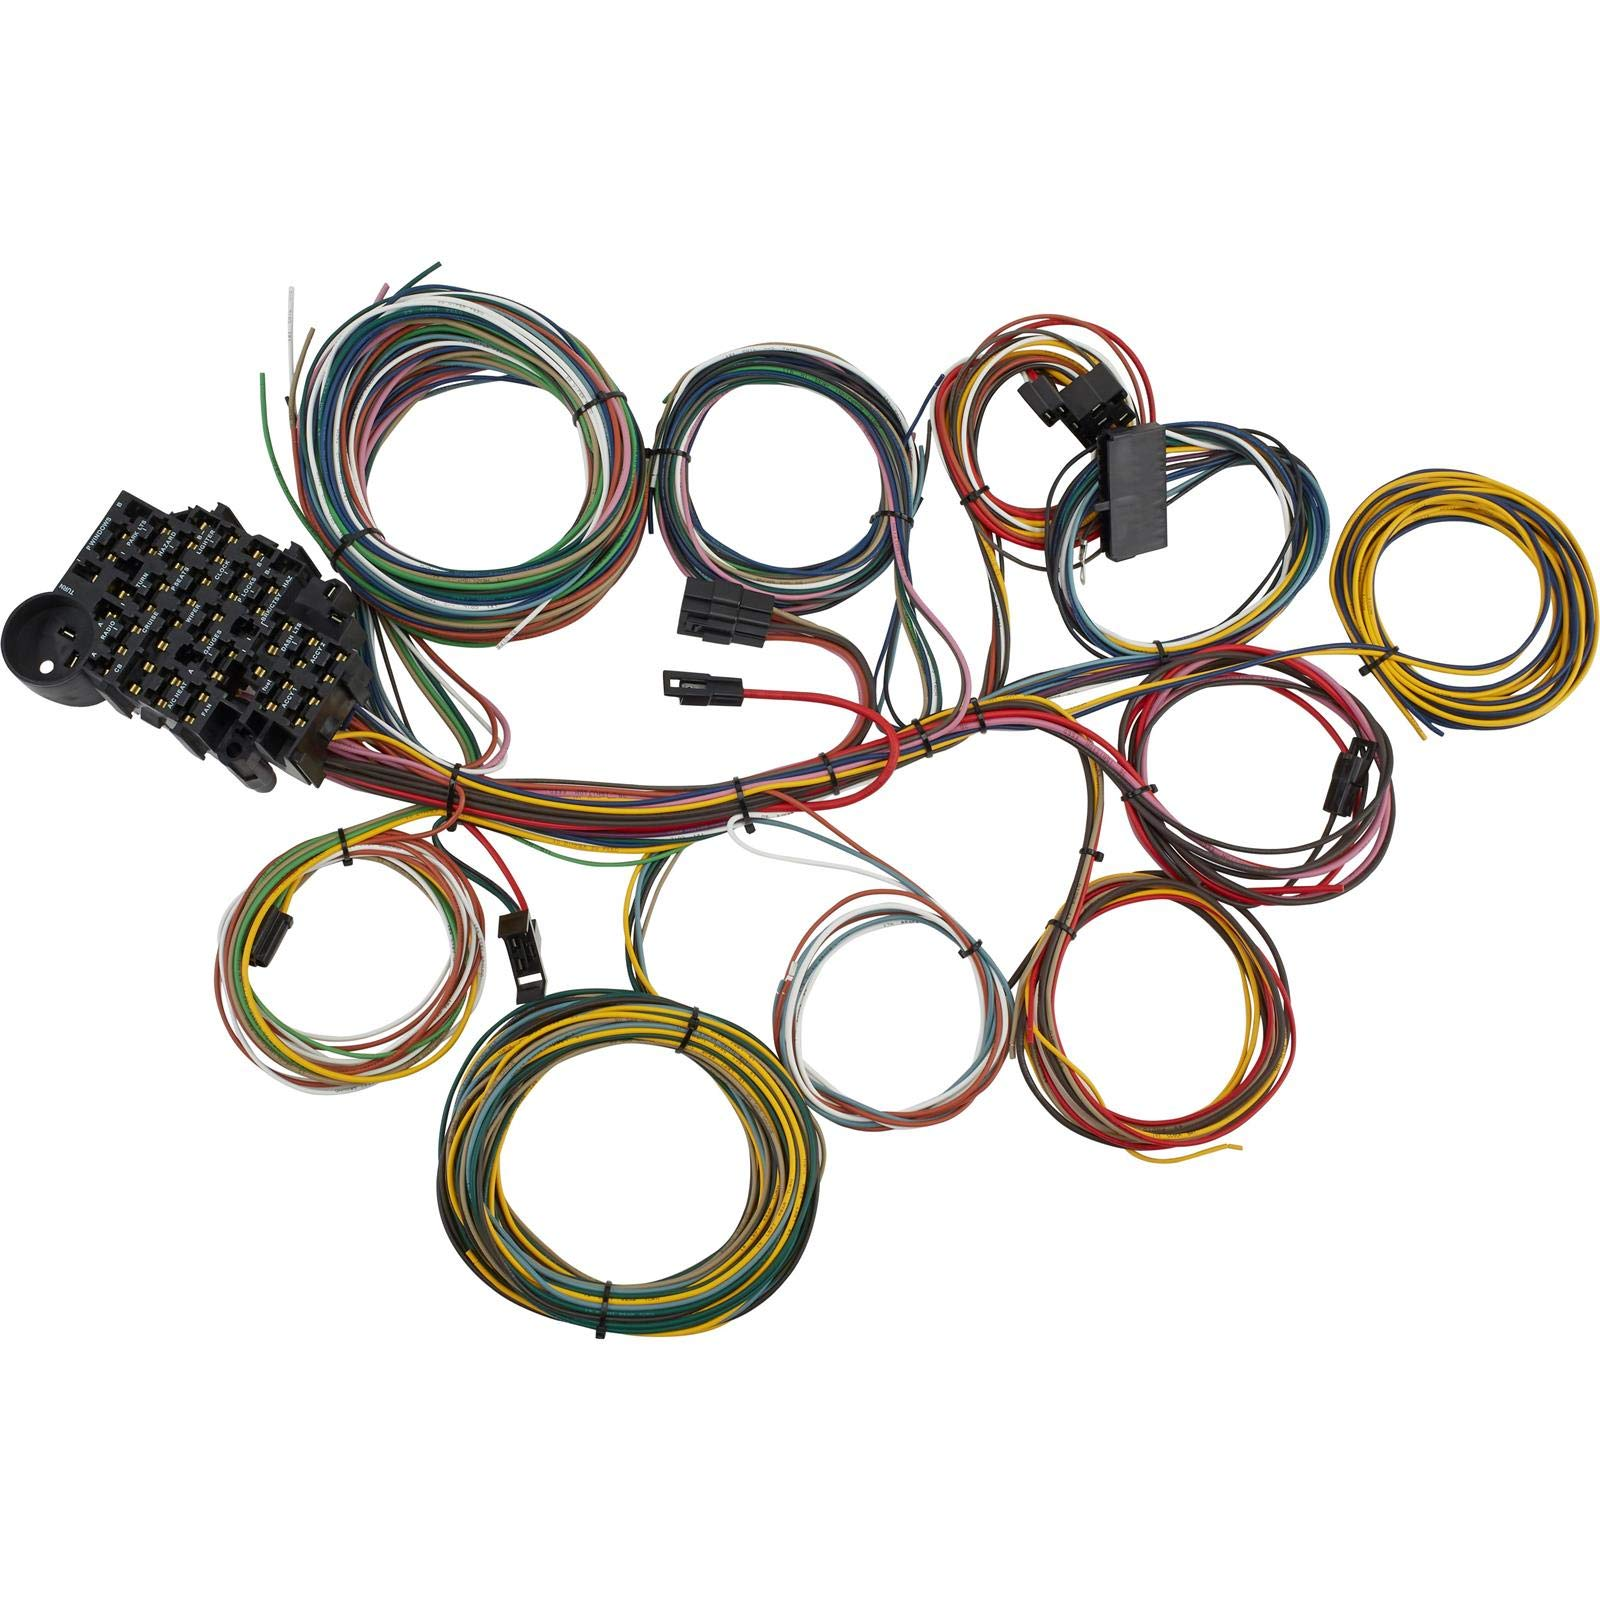 22 Circuit Universal Street Rod Wiring Harness w/Detailed Instructions by Speedway Motors